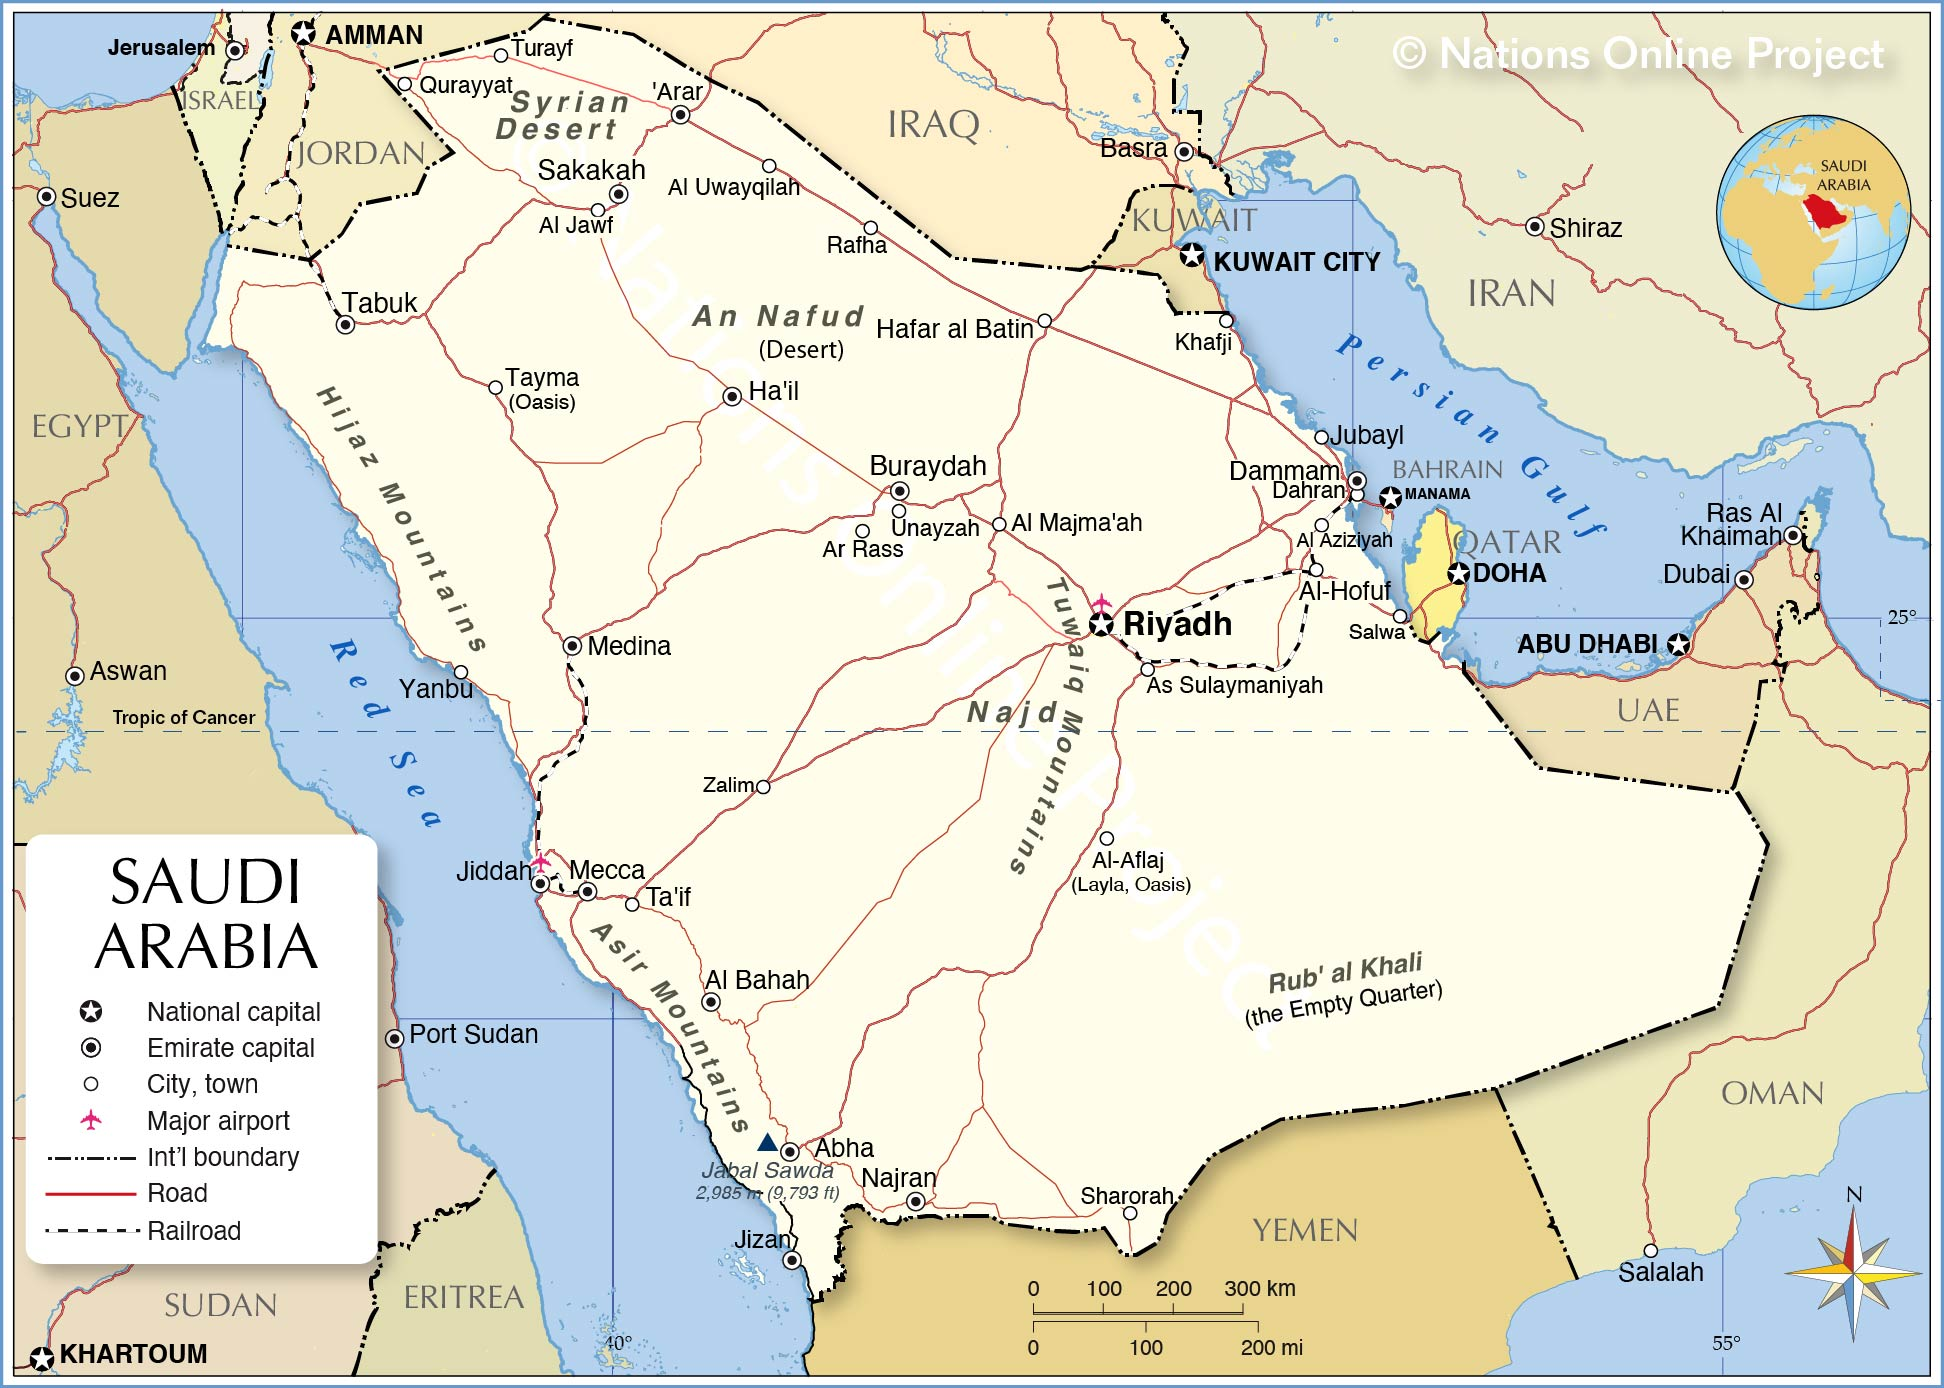 Political Map of Saudi Arabia - Nations Online Project